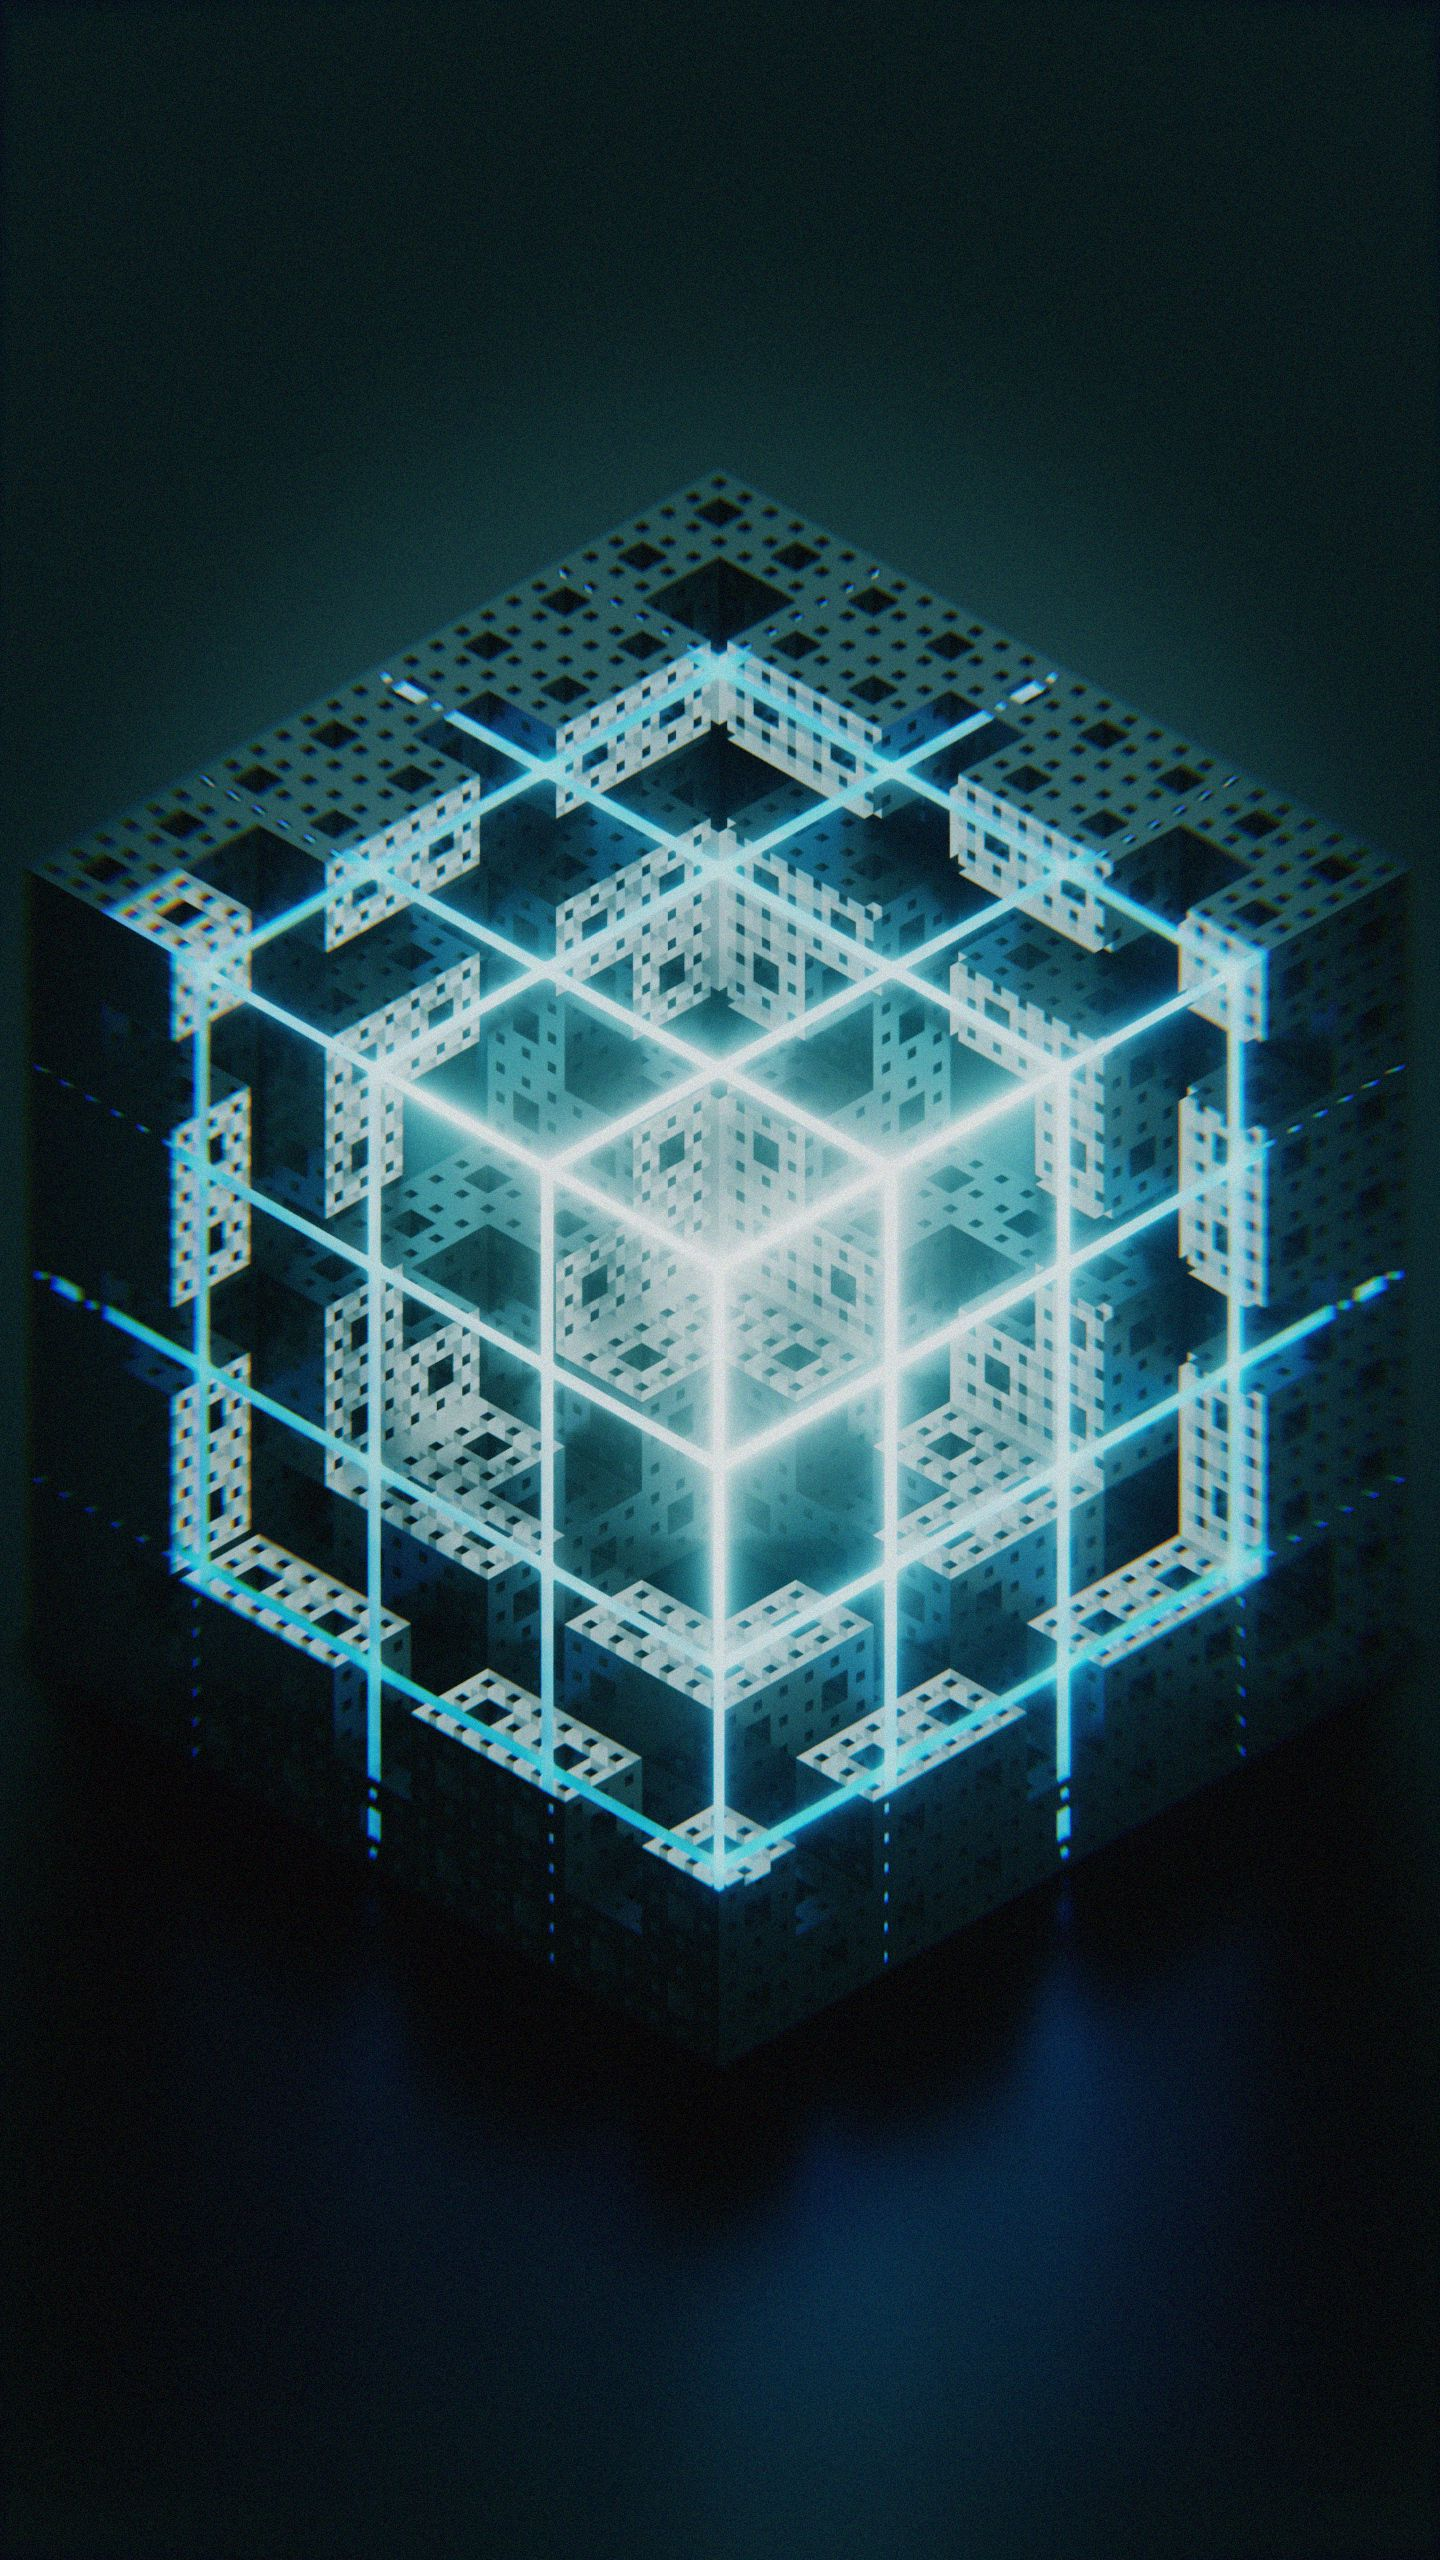 135456 download wallpaper Cube, Structure, Glow, Form, 3D screensavers and pictures for free